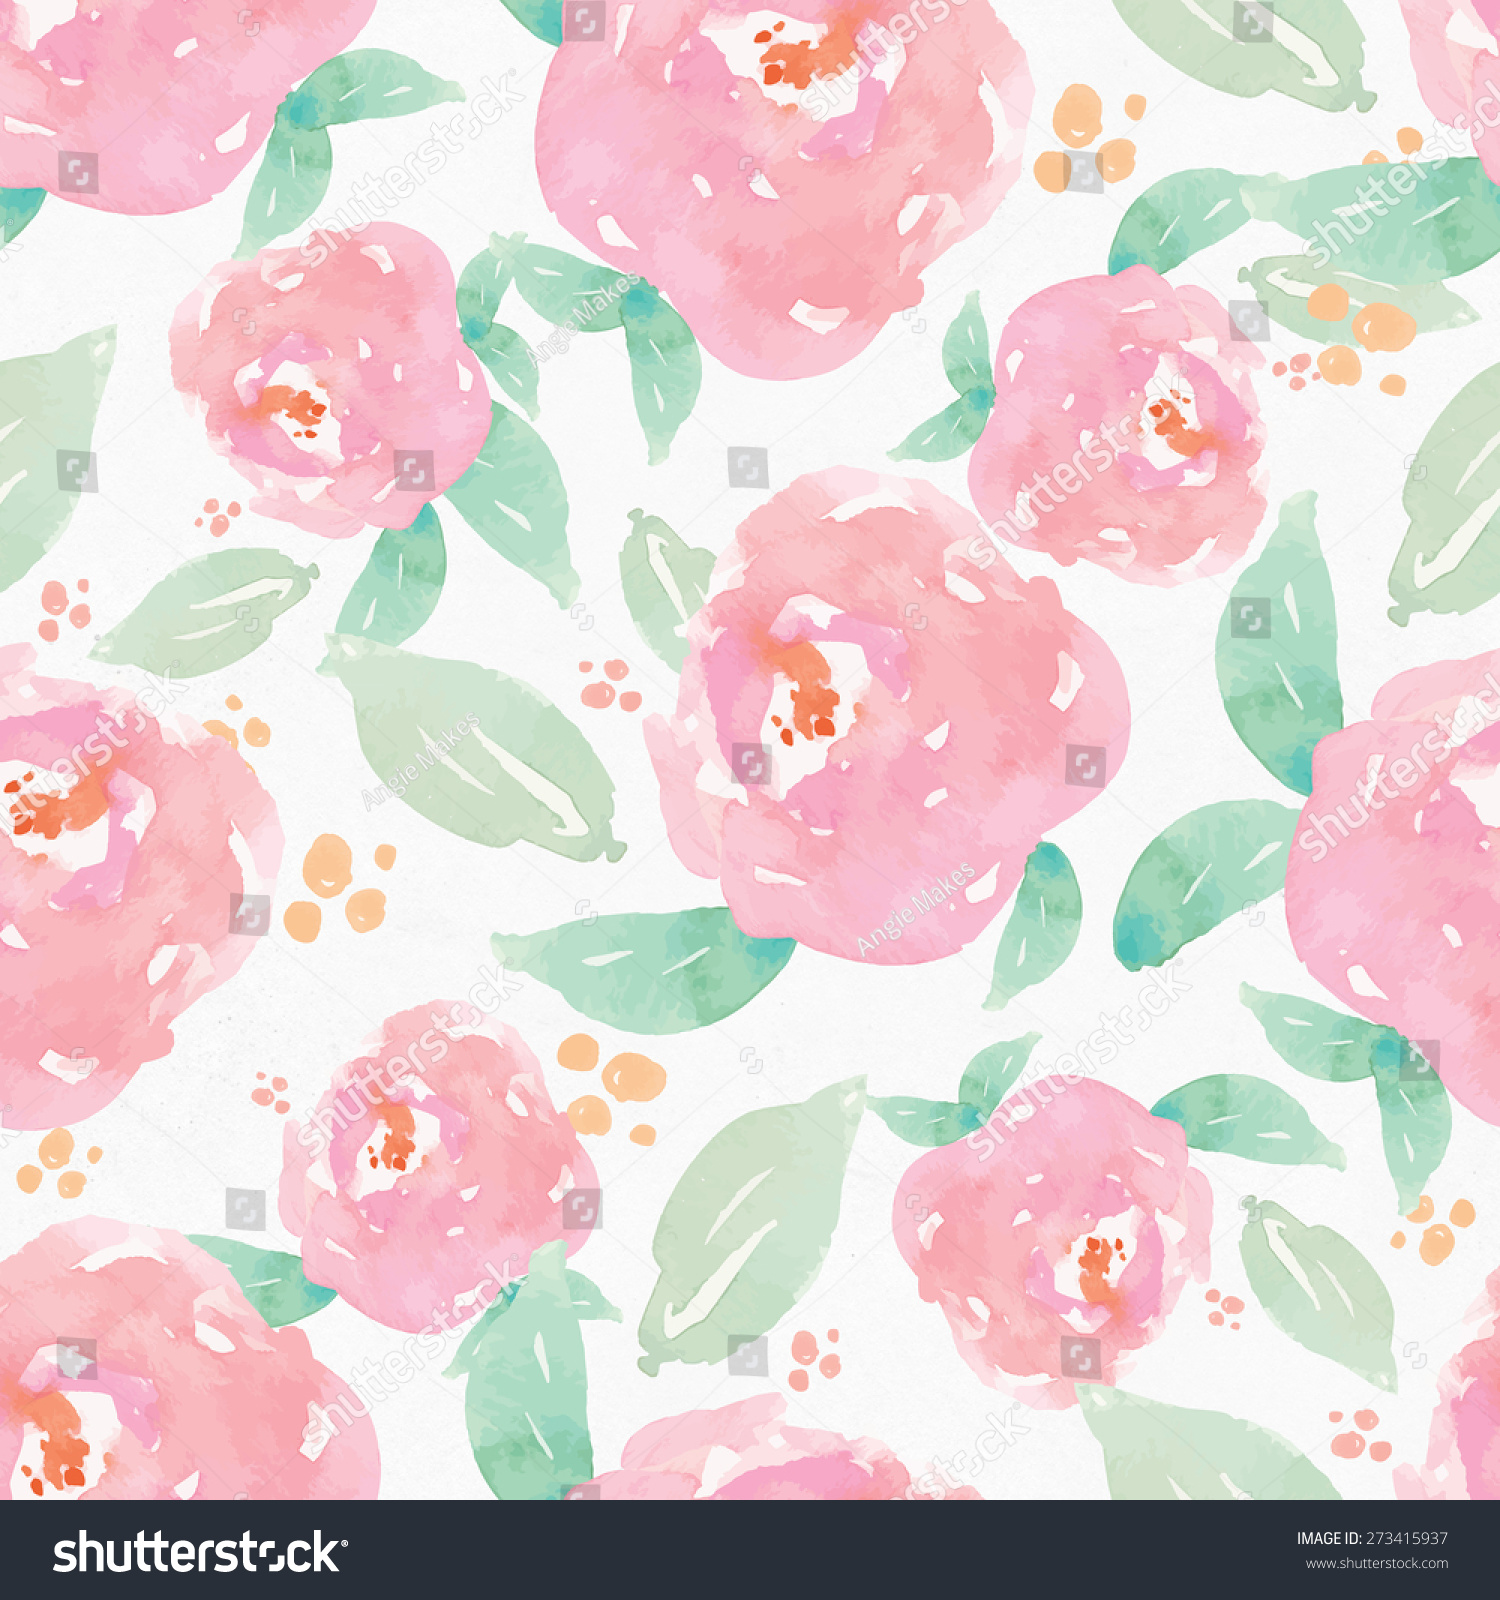 Orange Fall Peony Wallpaper Repeating Watercolor Flower Background Pattern Watercolour